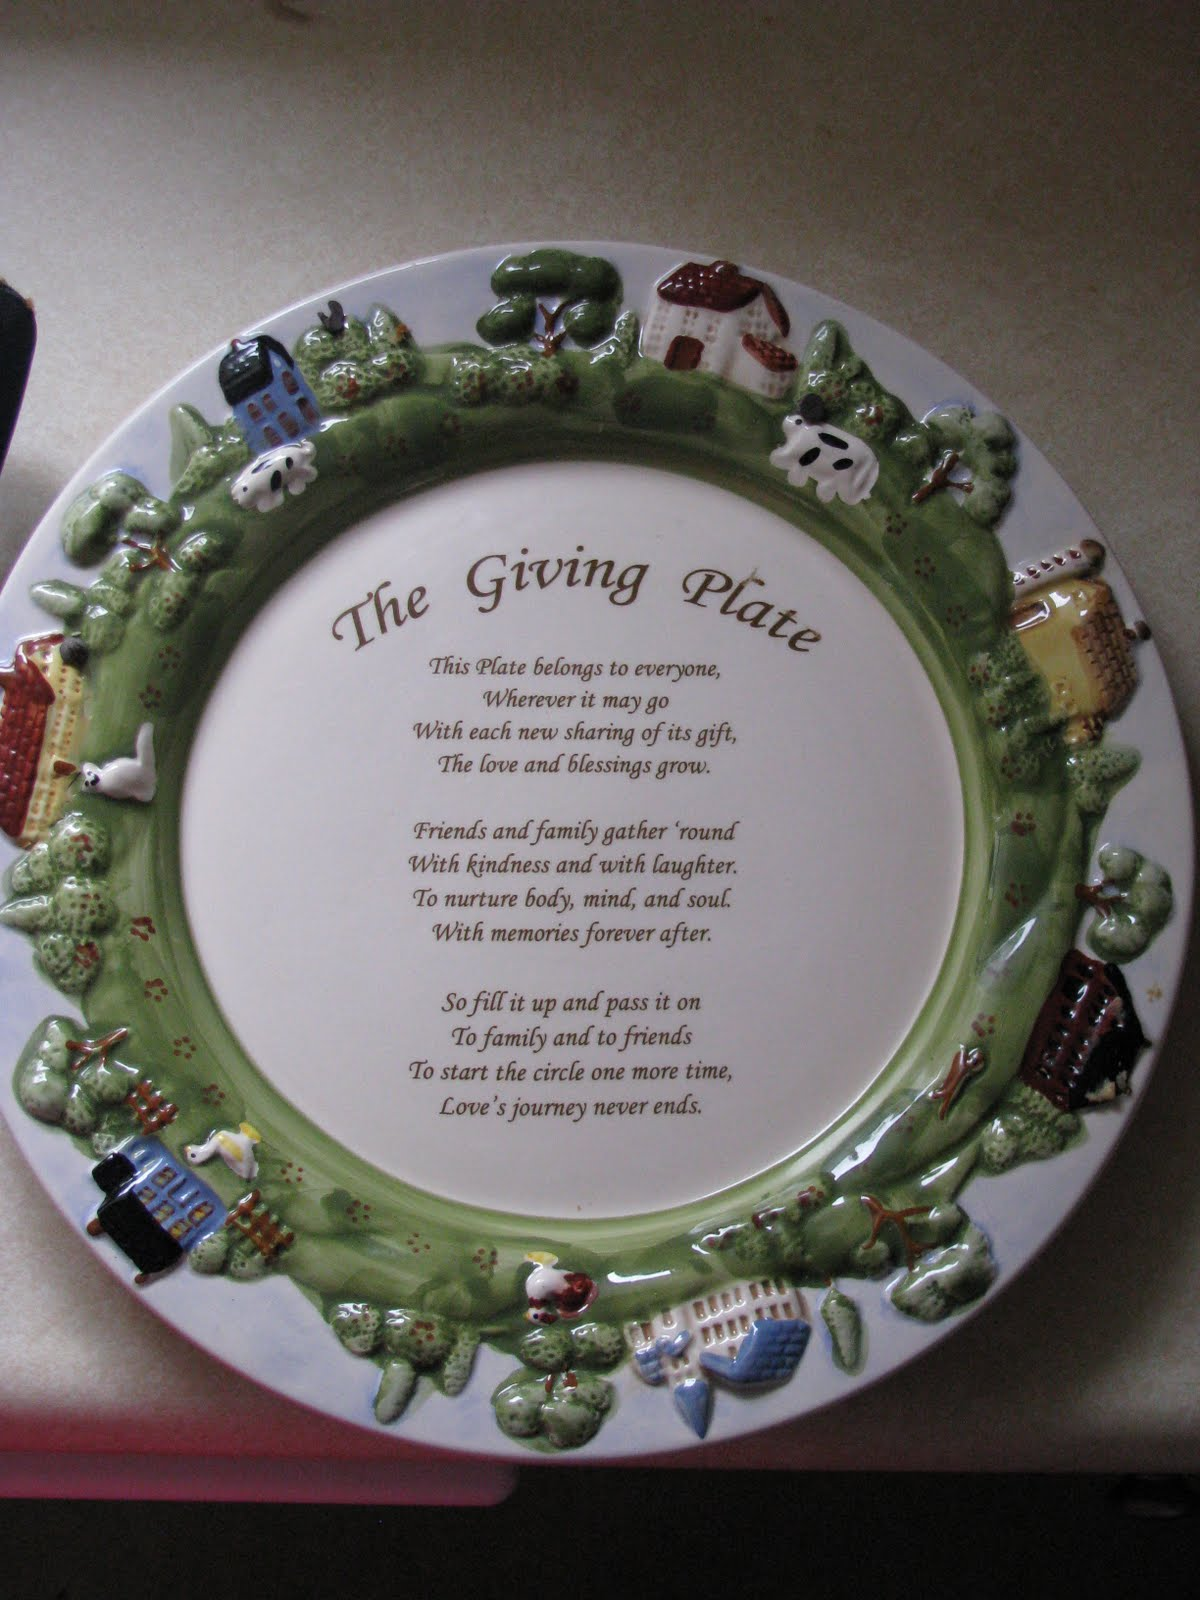 A Short Story The Giving Plate